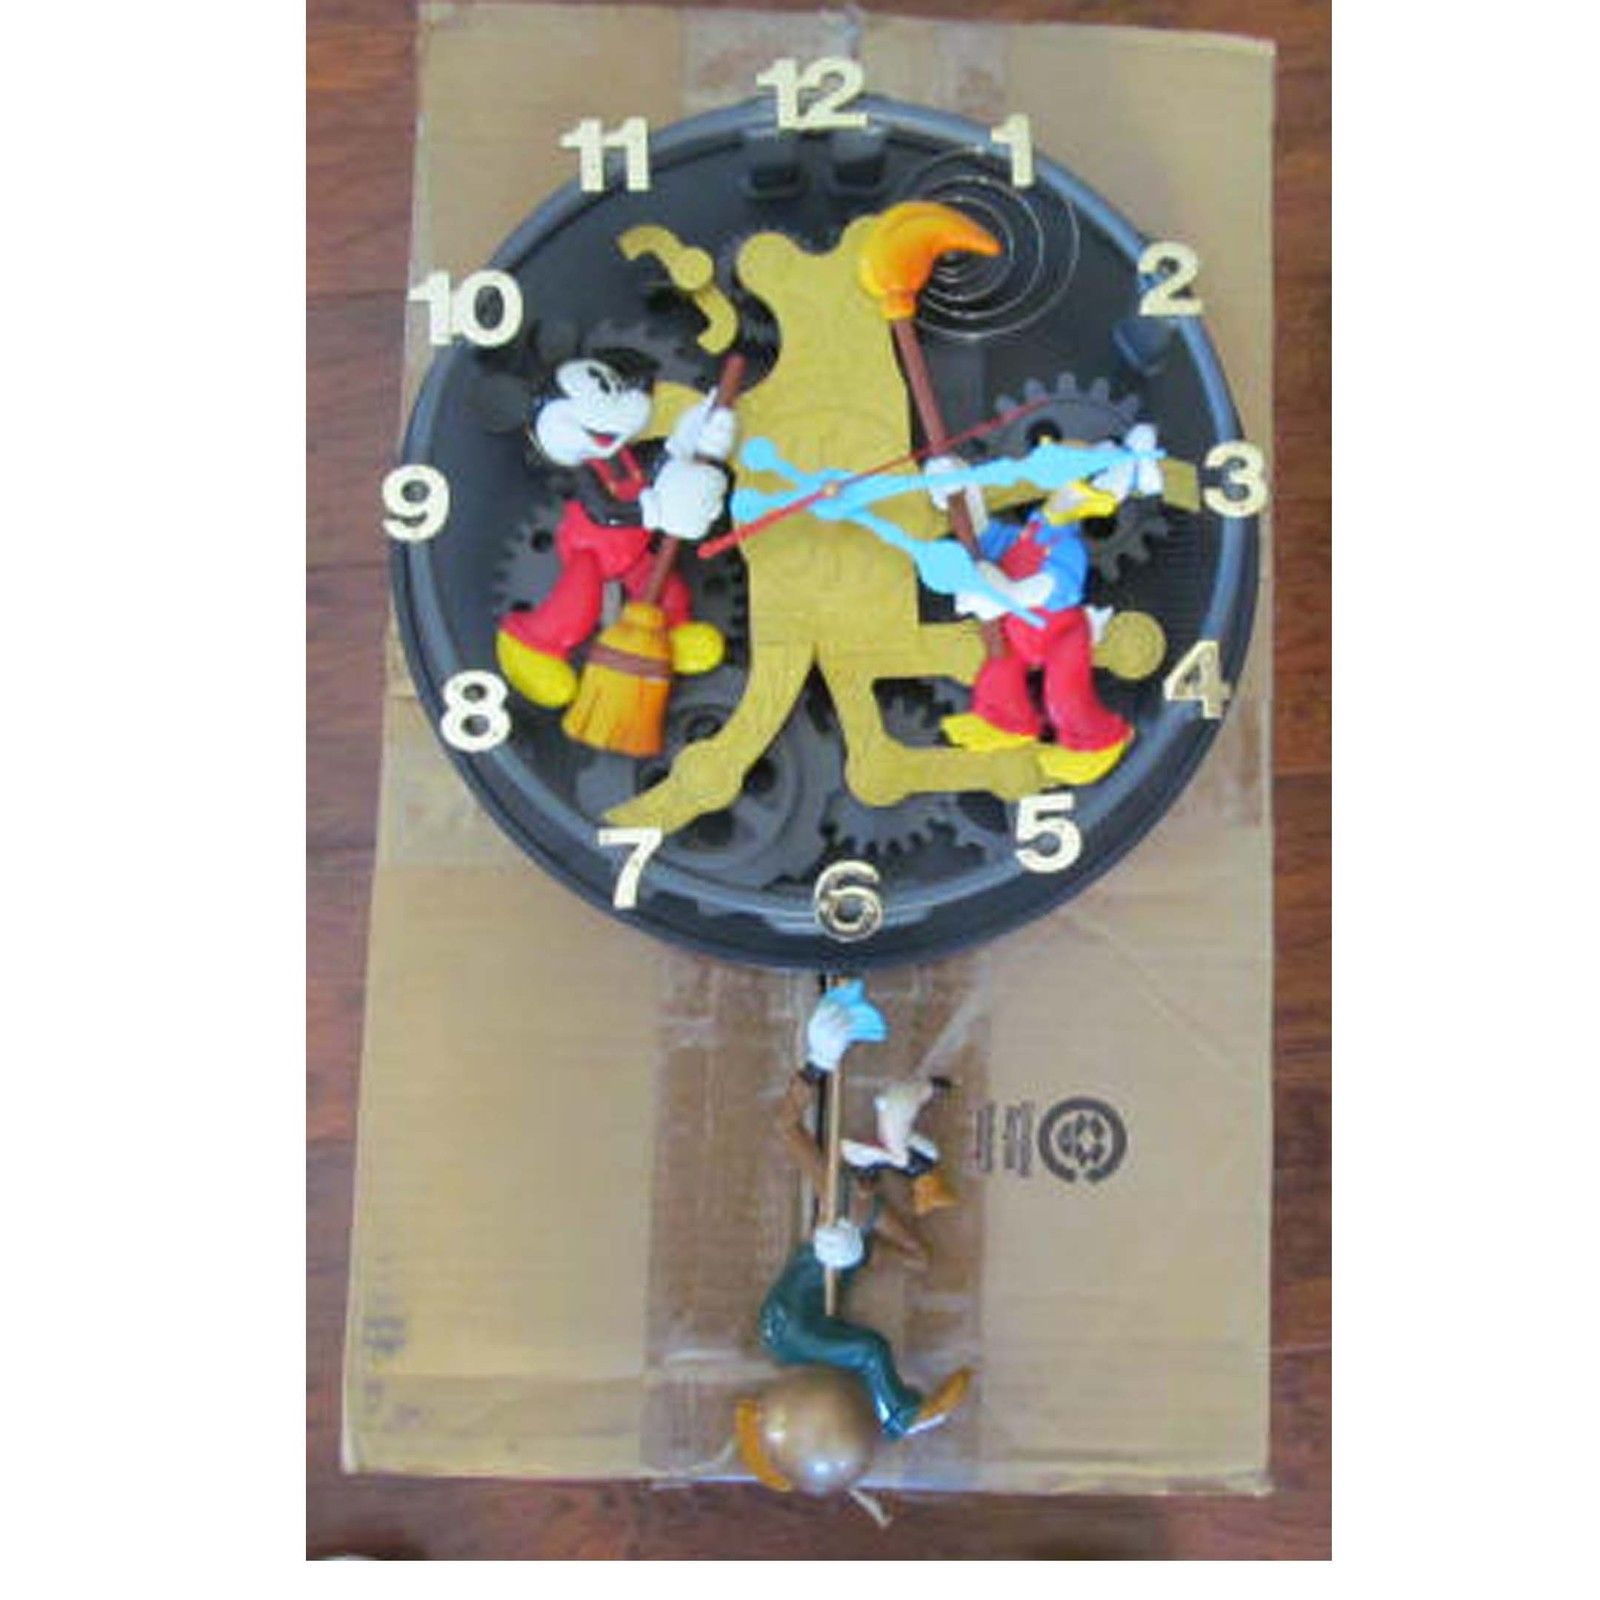 Disney wall clock cleaners mickey mouse donald duck goofy animated disney wall clock cleaners mickey mouse donald duck goofy animated talking amipublicfo Choice Image